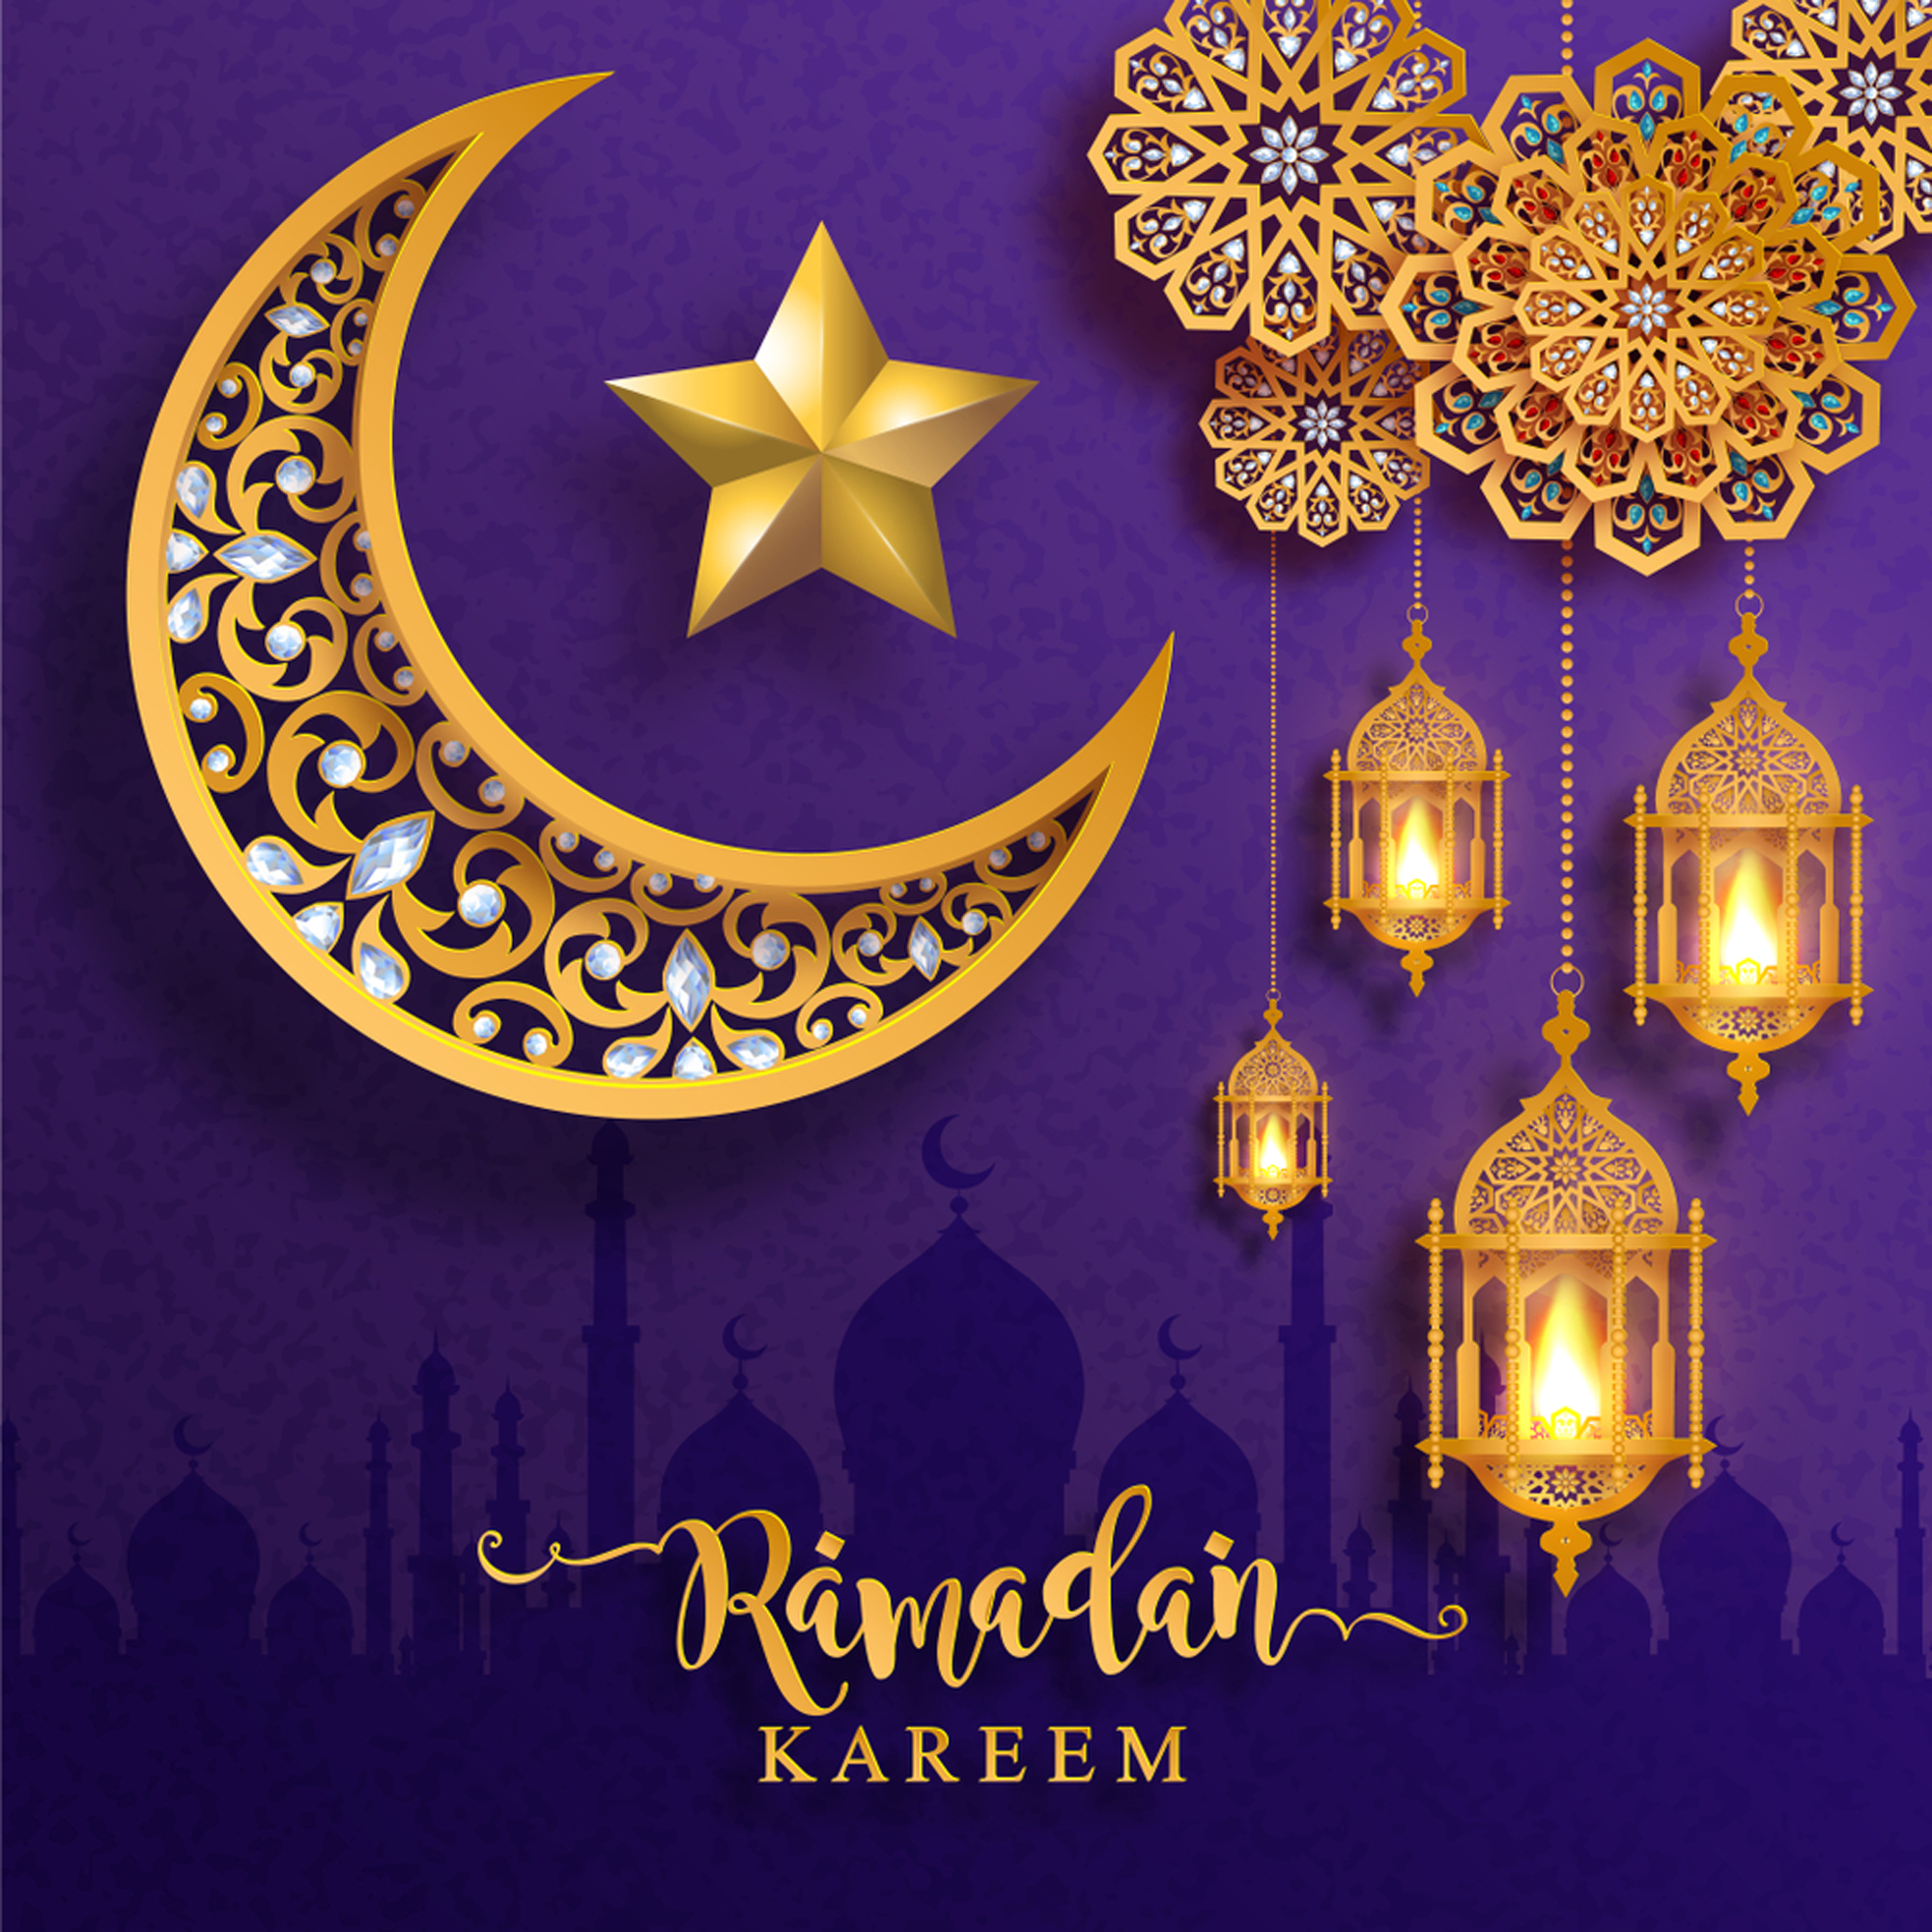 Ramadan Kareem In 2021 Ramadan Wishes Ramadan Mubarak Wallpapers Ramadan Greetings